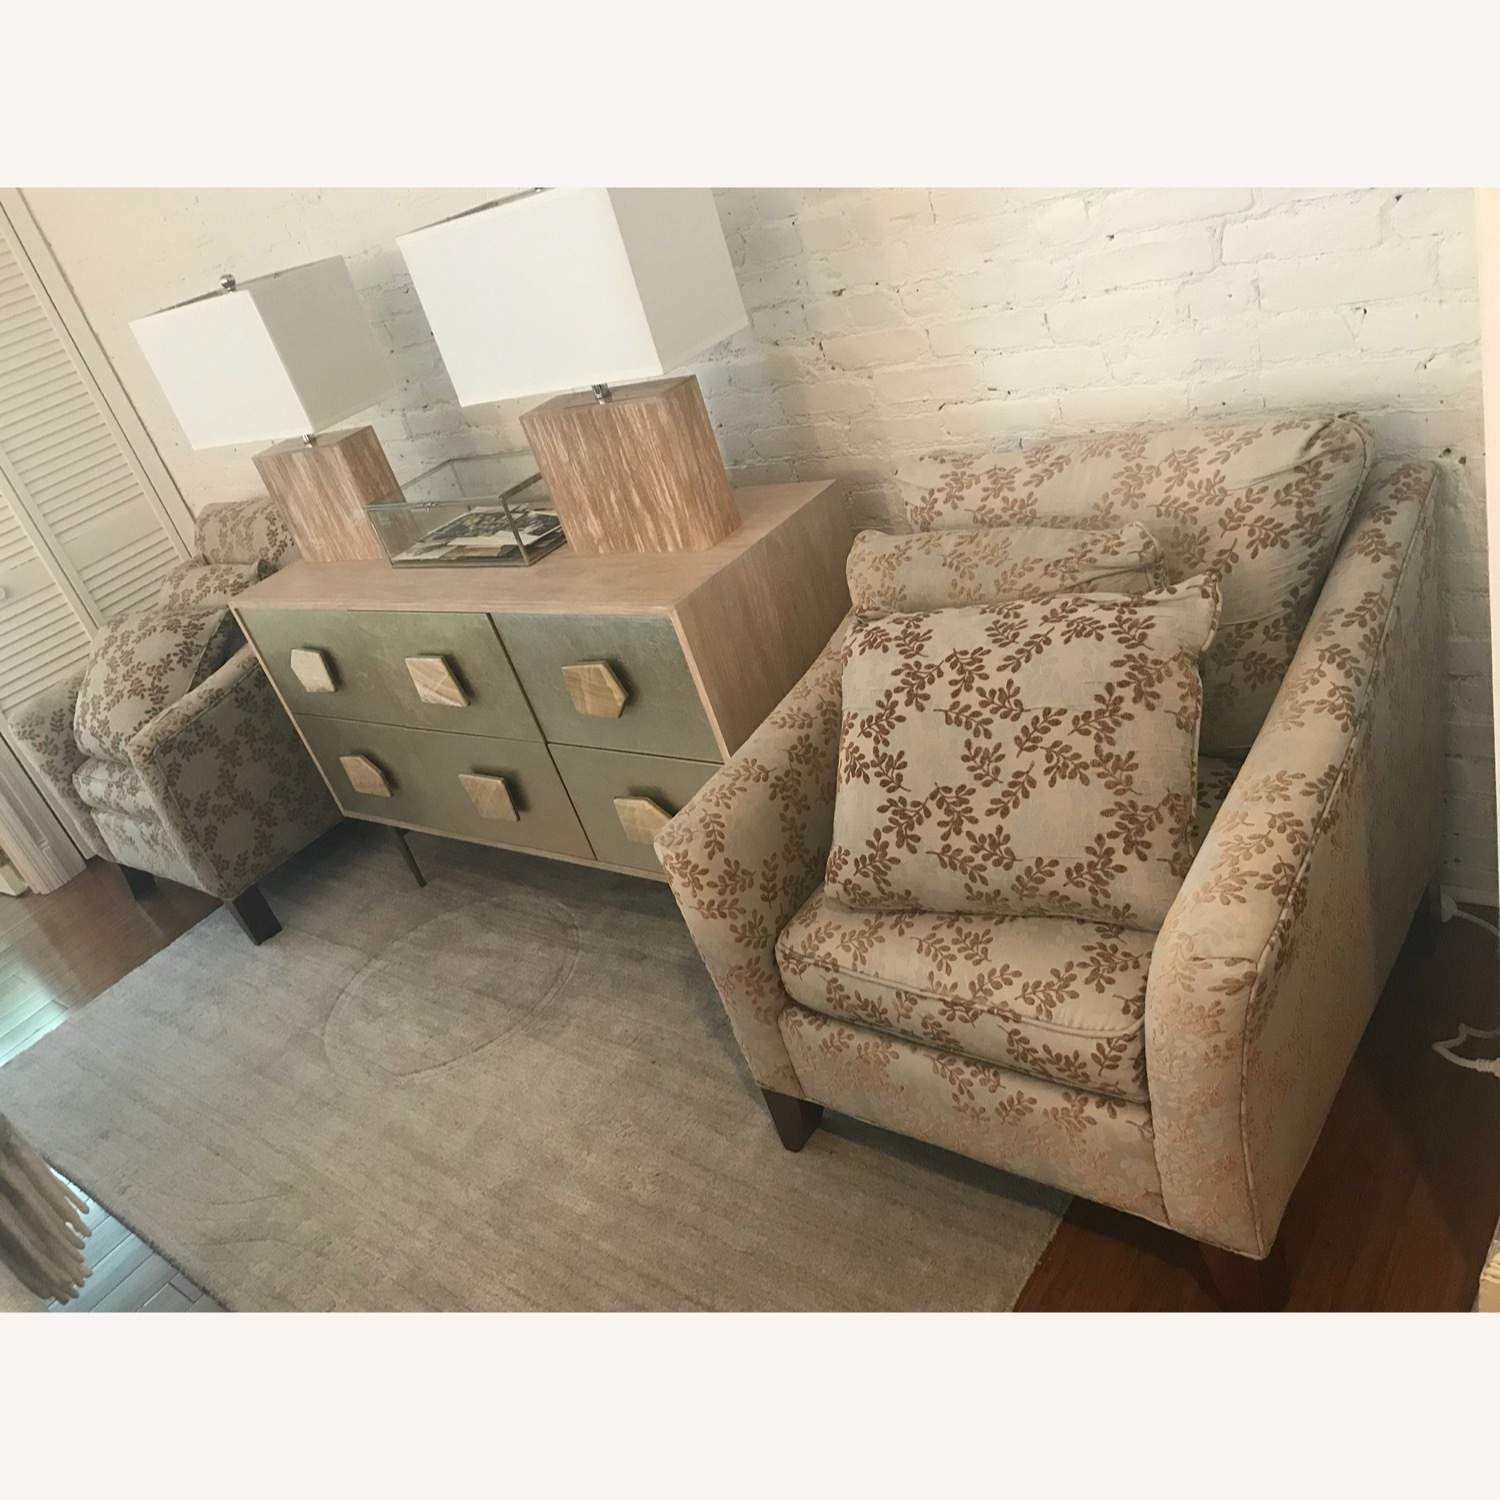 2 Ethan Allen Neutral Patterned Arm Chairs - image-5